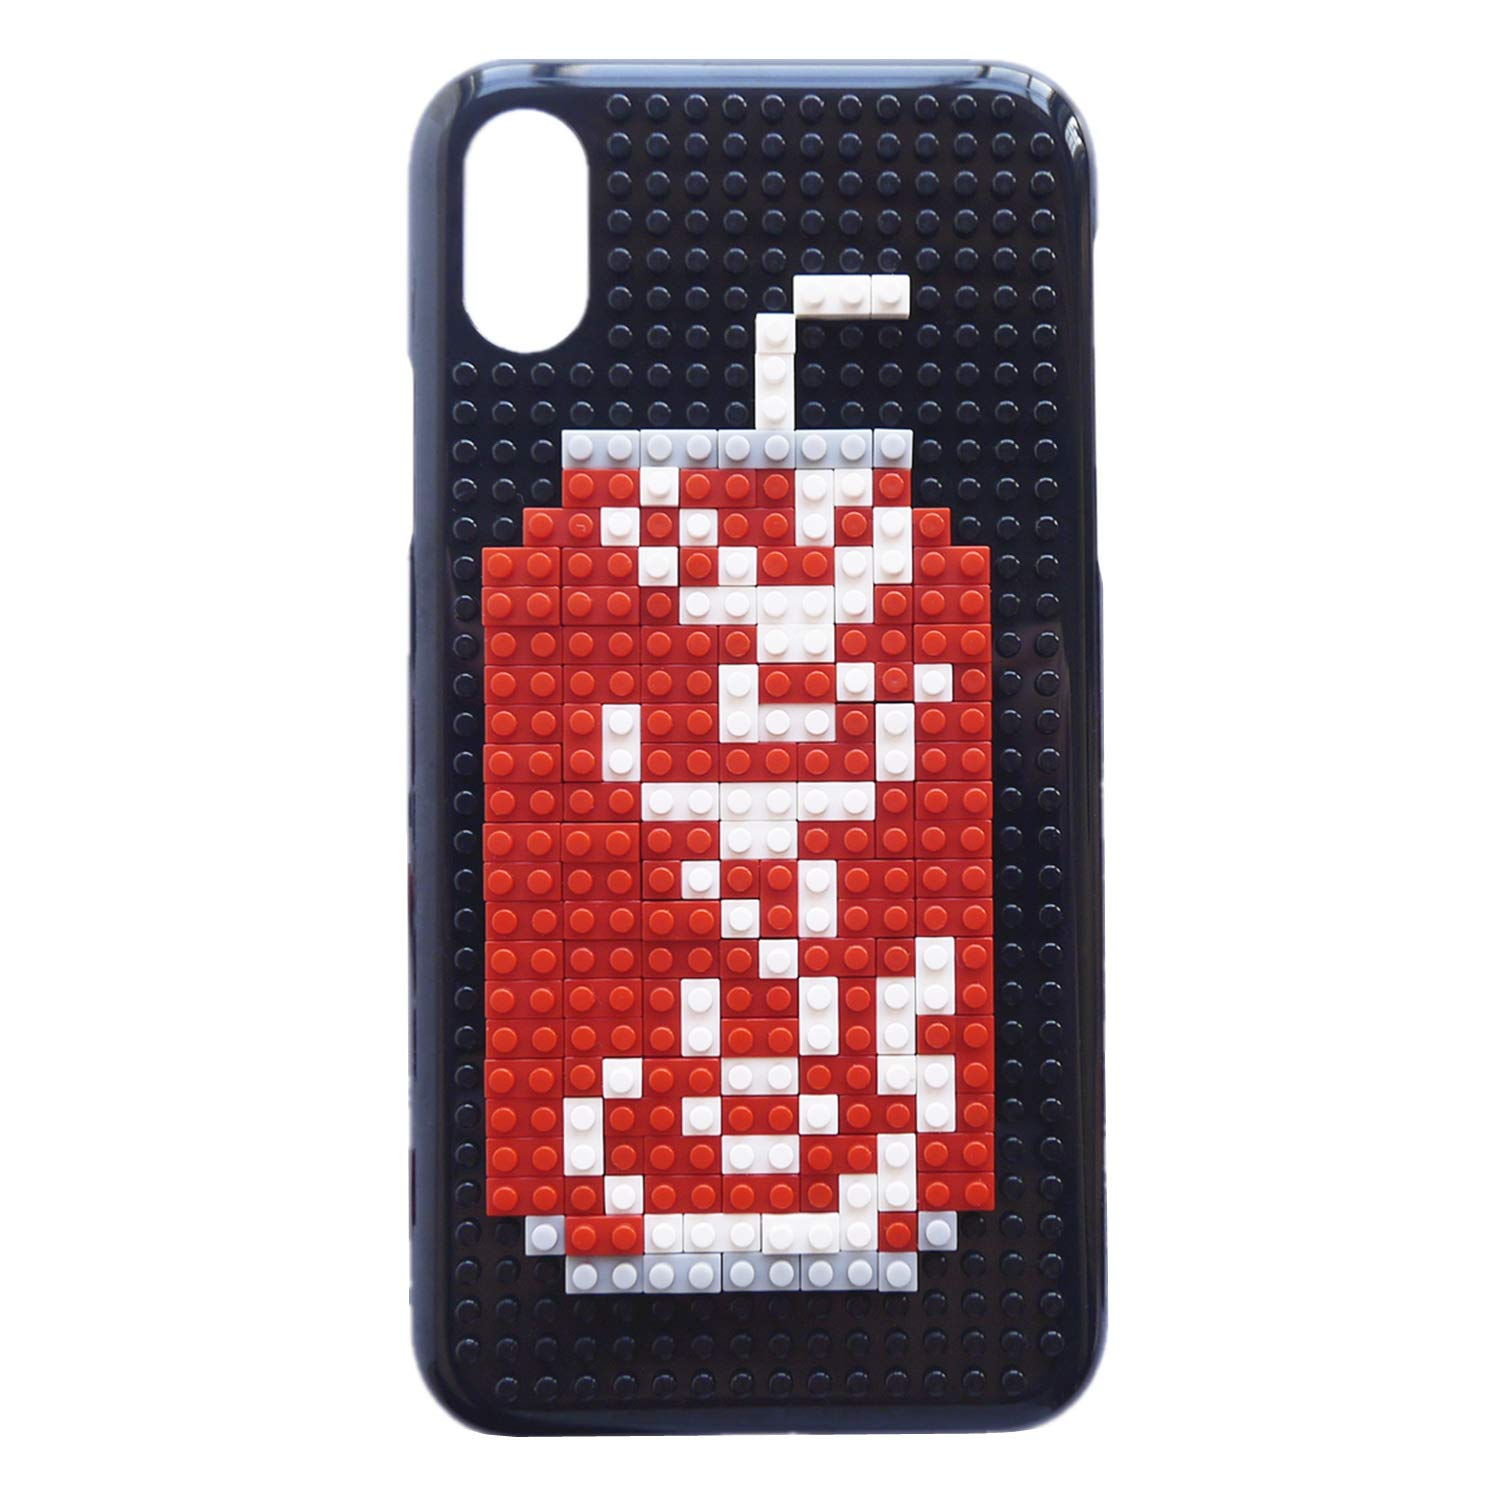 best service 13ea6 32d0b iPhone Xs Case, iPhone X Case, DMaos Cute Cartoon 3D DIY Mini Building  Blocks Toy for Boys and Girls Creative Ability, Cool for iPhone 10s/10 5.8  Inch ...